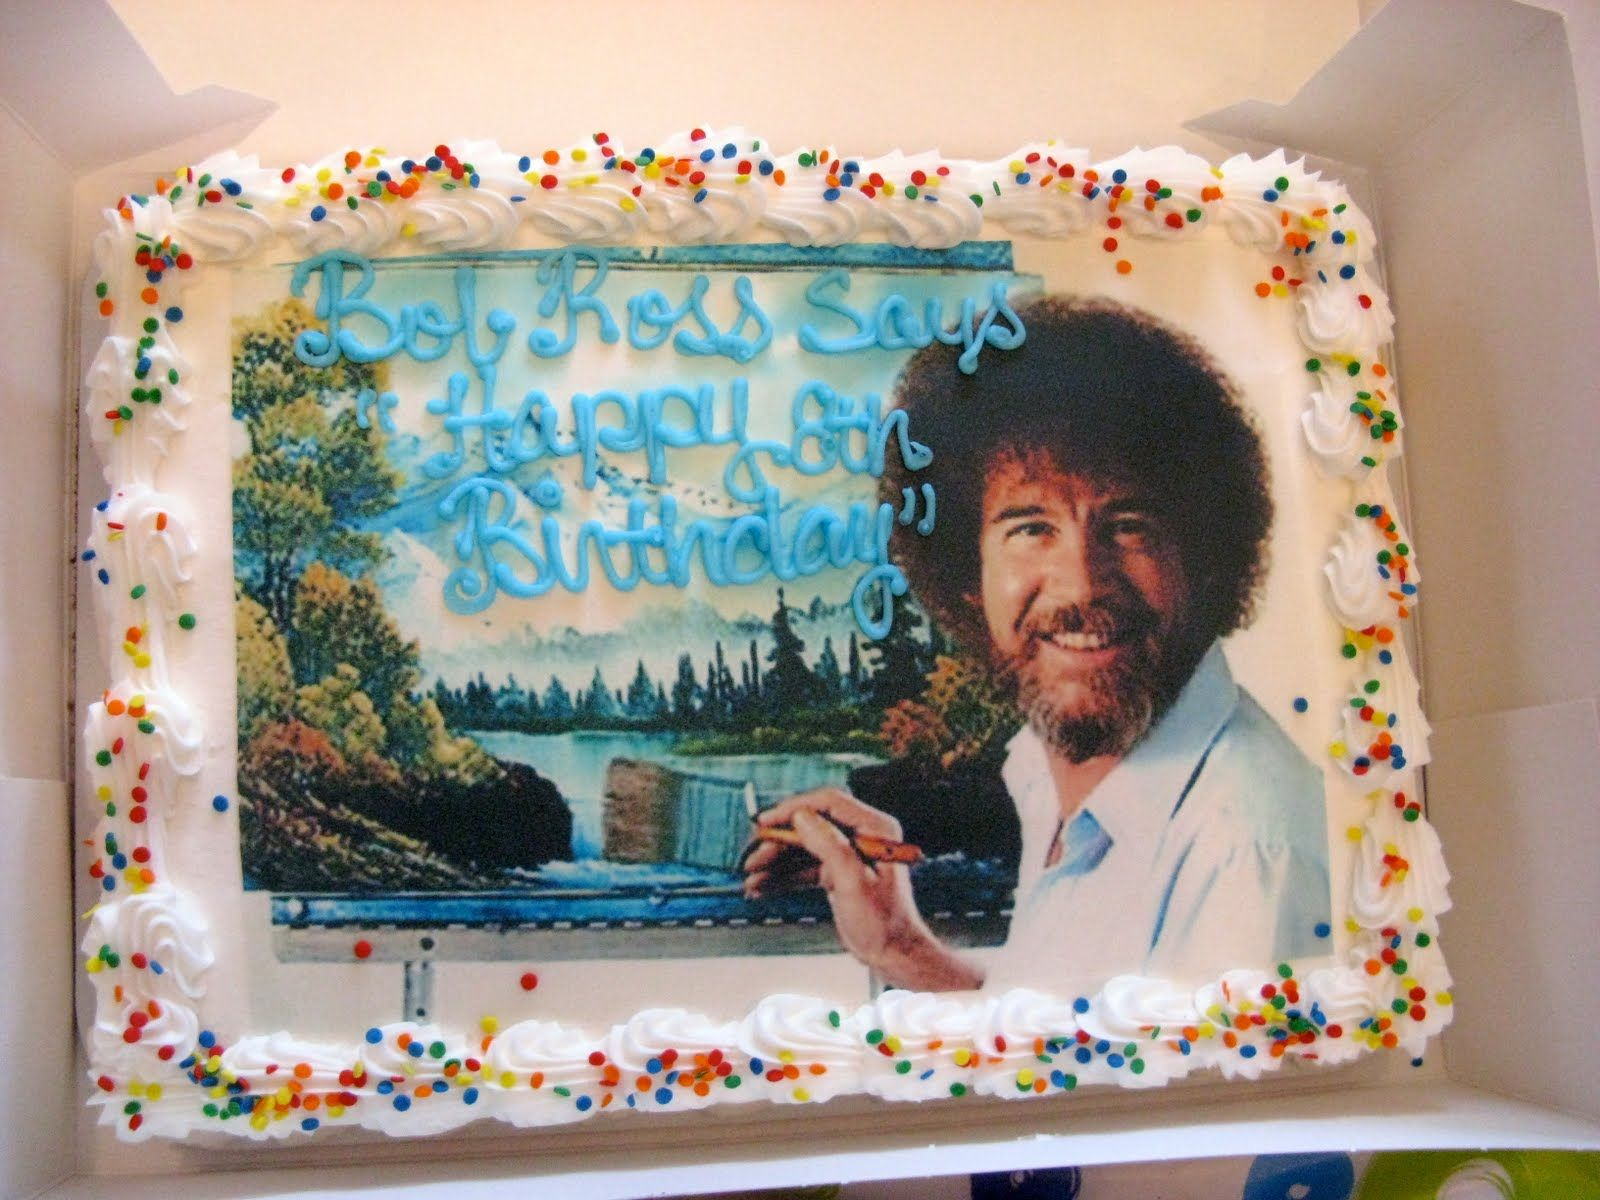 Fabulous Bob Ross Cake I Want For My Birthday Bob Ross Birthday Birthday Party Games 16th Birthday Party